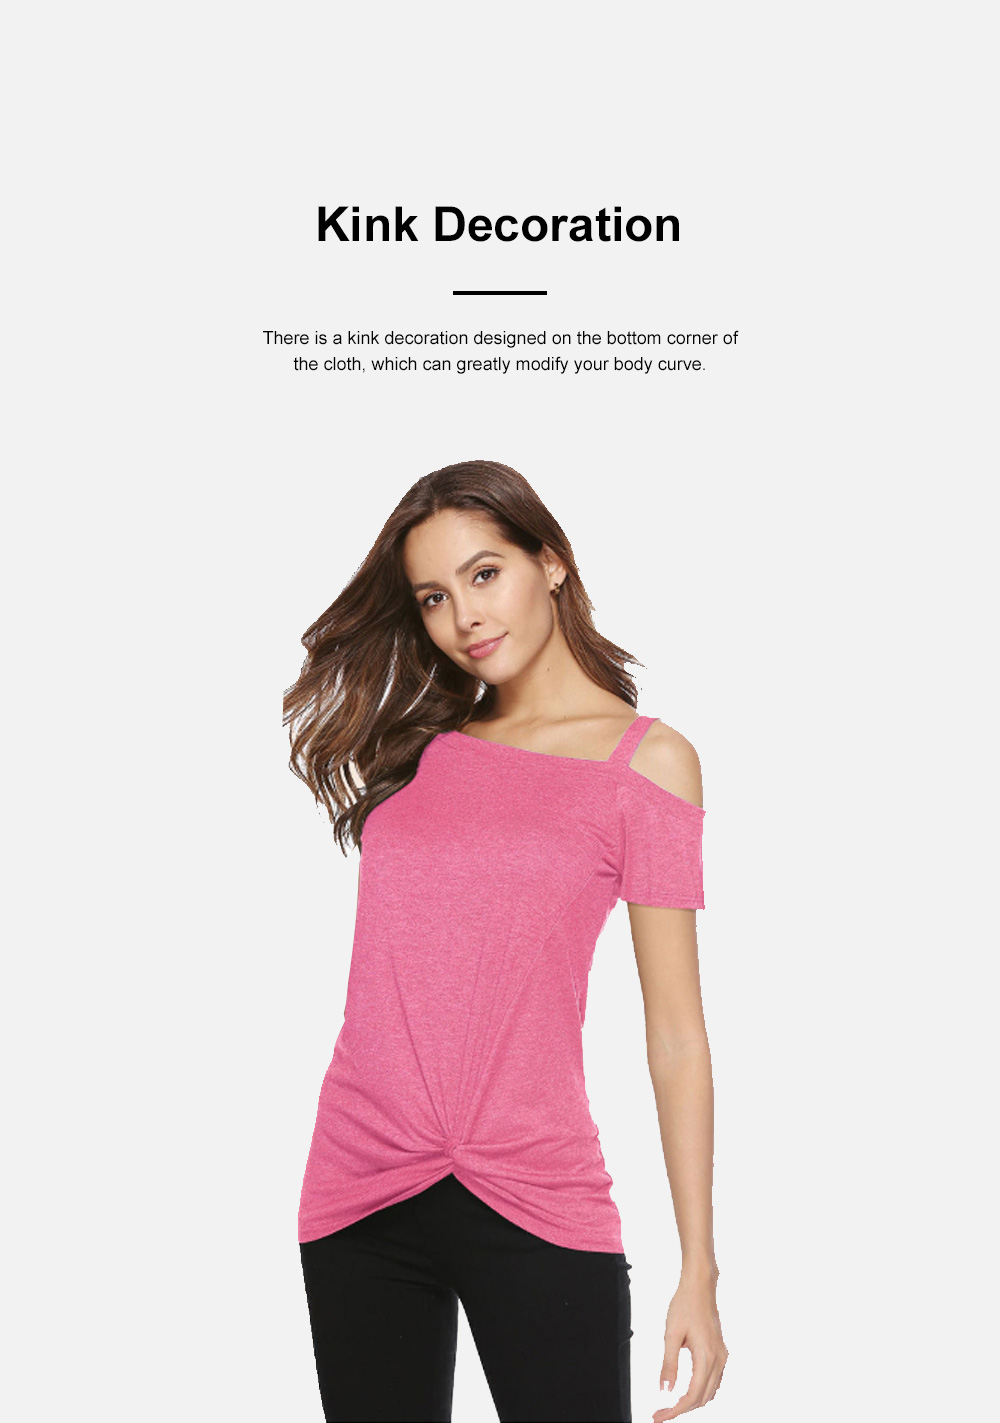 Minimalist Fashion Kink Decoration Off-Shoulder Women T-shirt, Ultra-soft Casual Pure Color Tops for Ladies 3